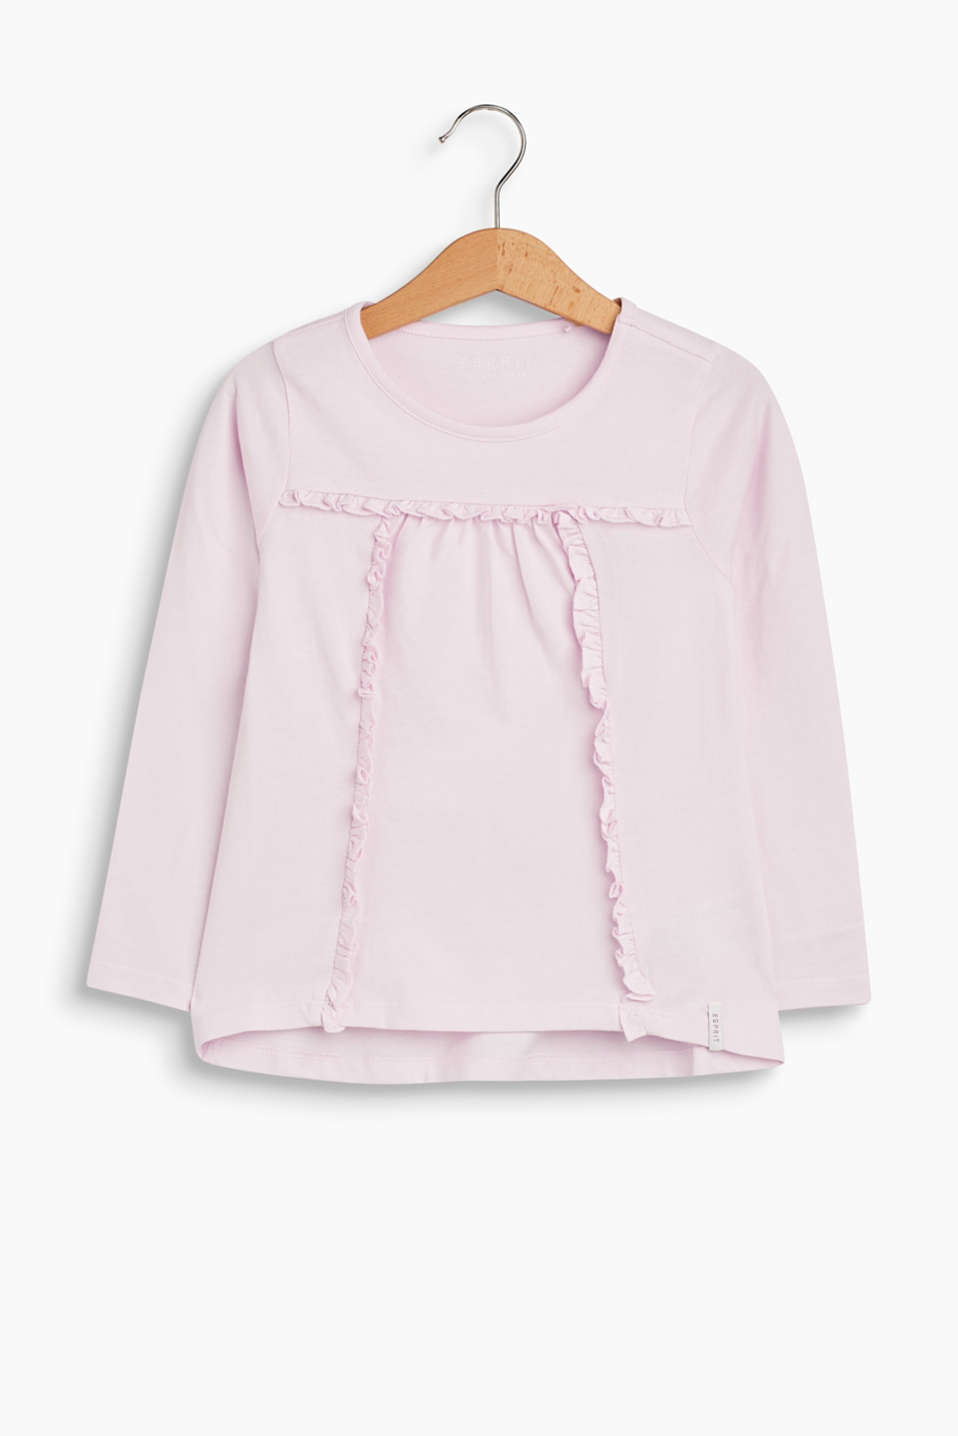 This long sleeve top gets a girly touch from the frilled borders on the front.